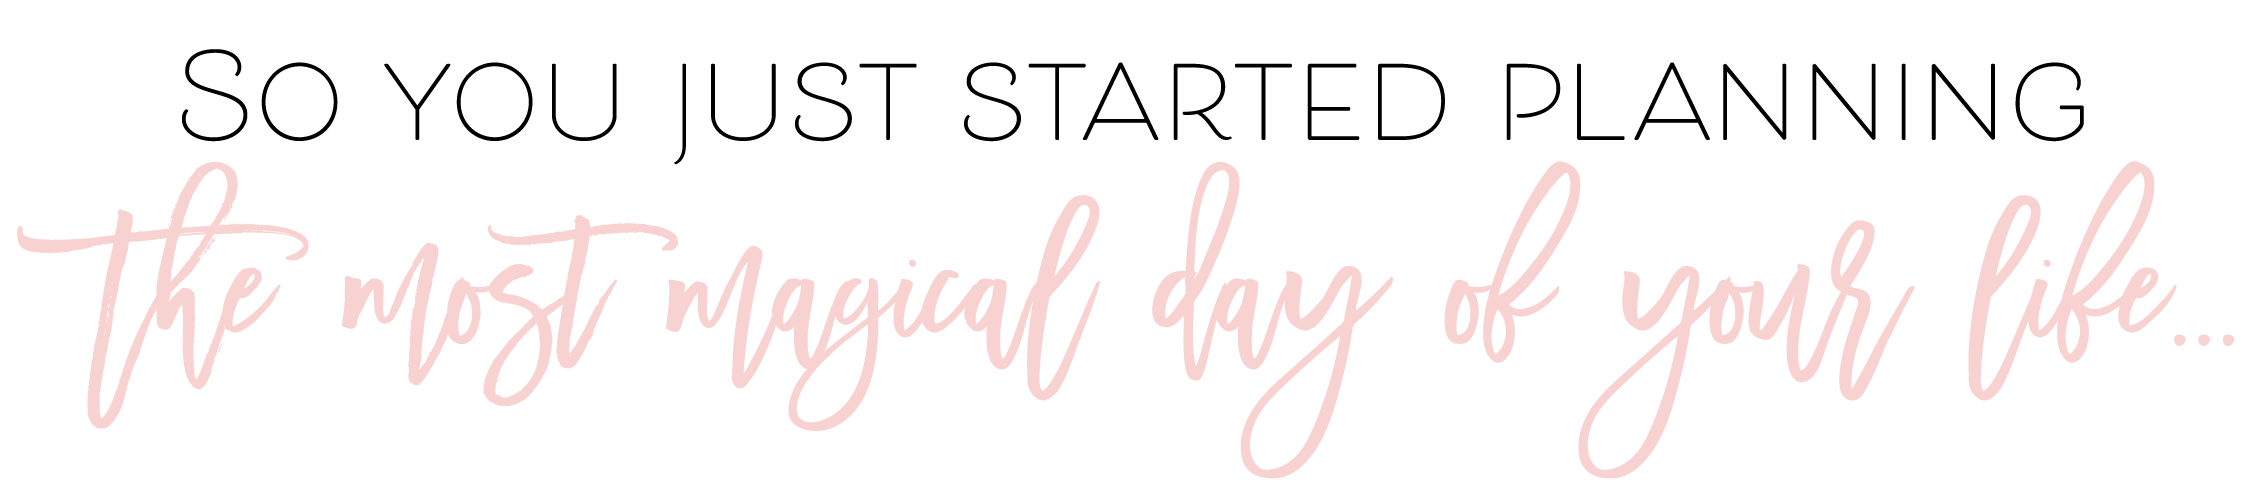 So you just started planning the most magical day of your life...